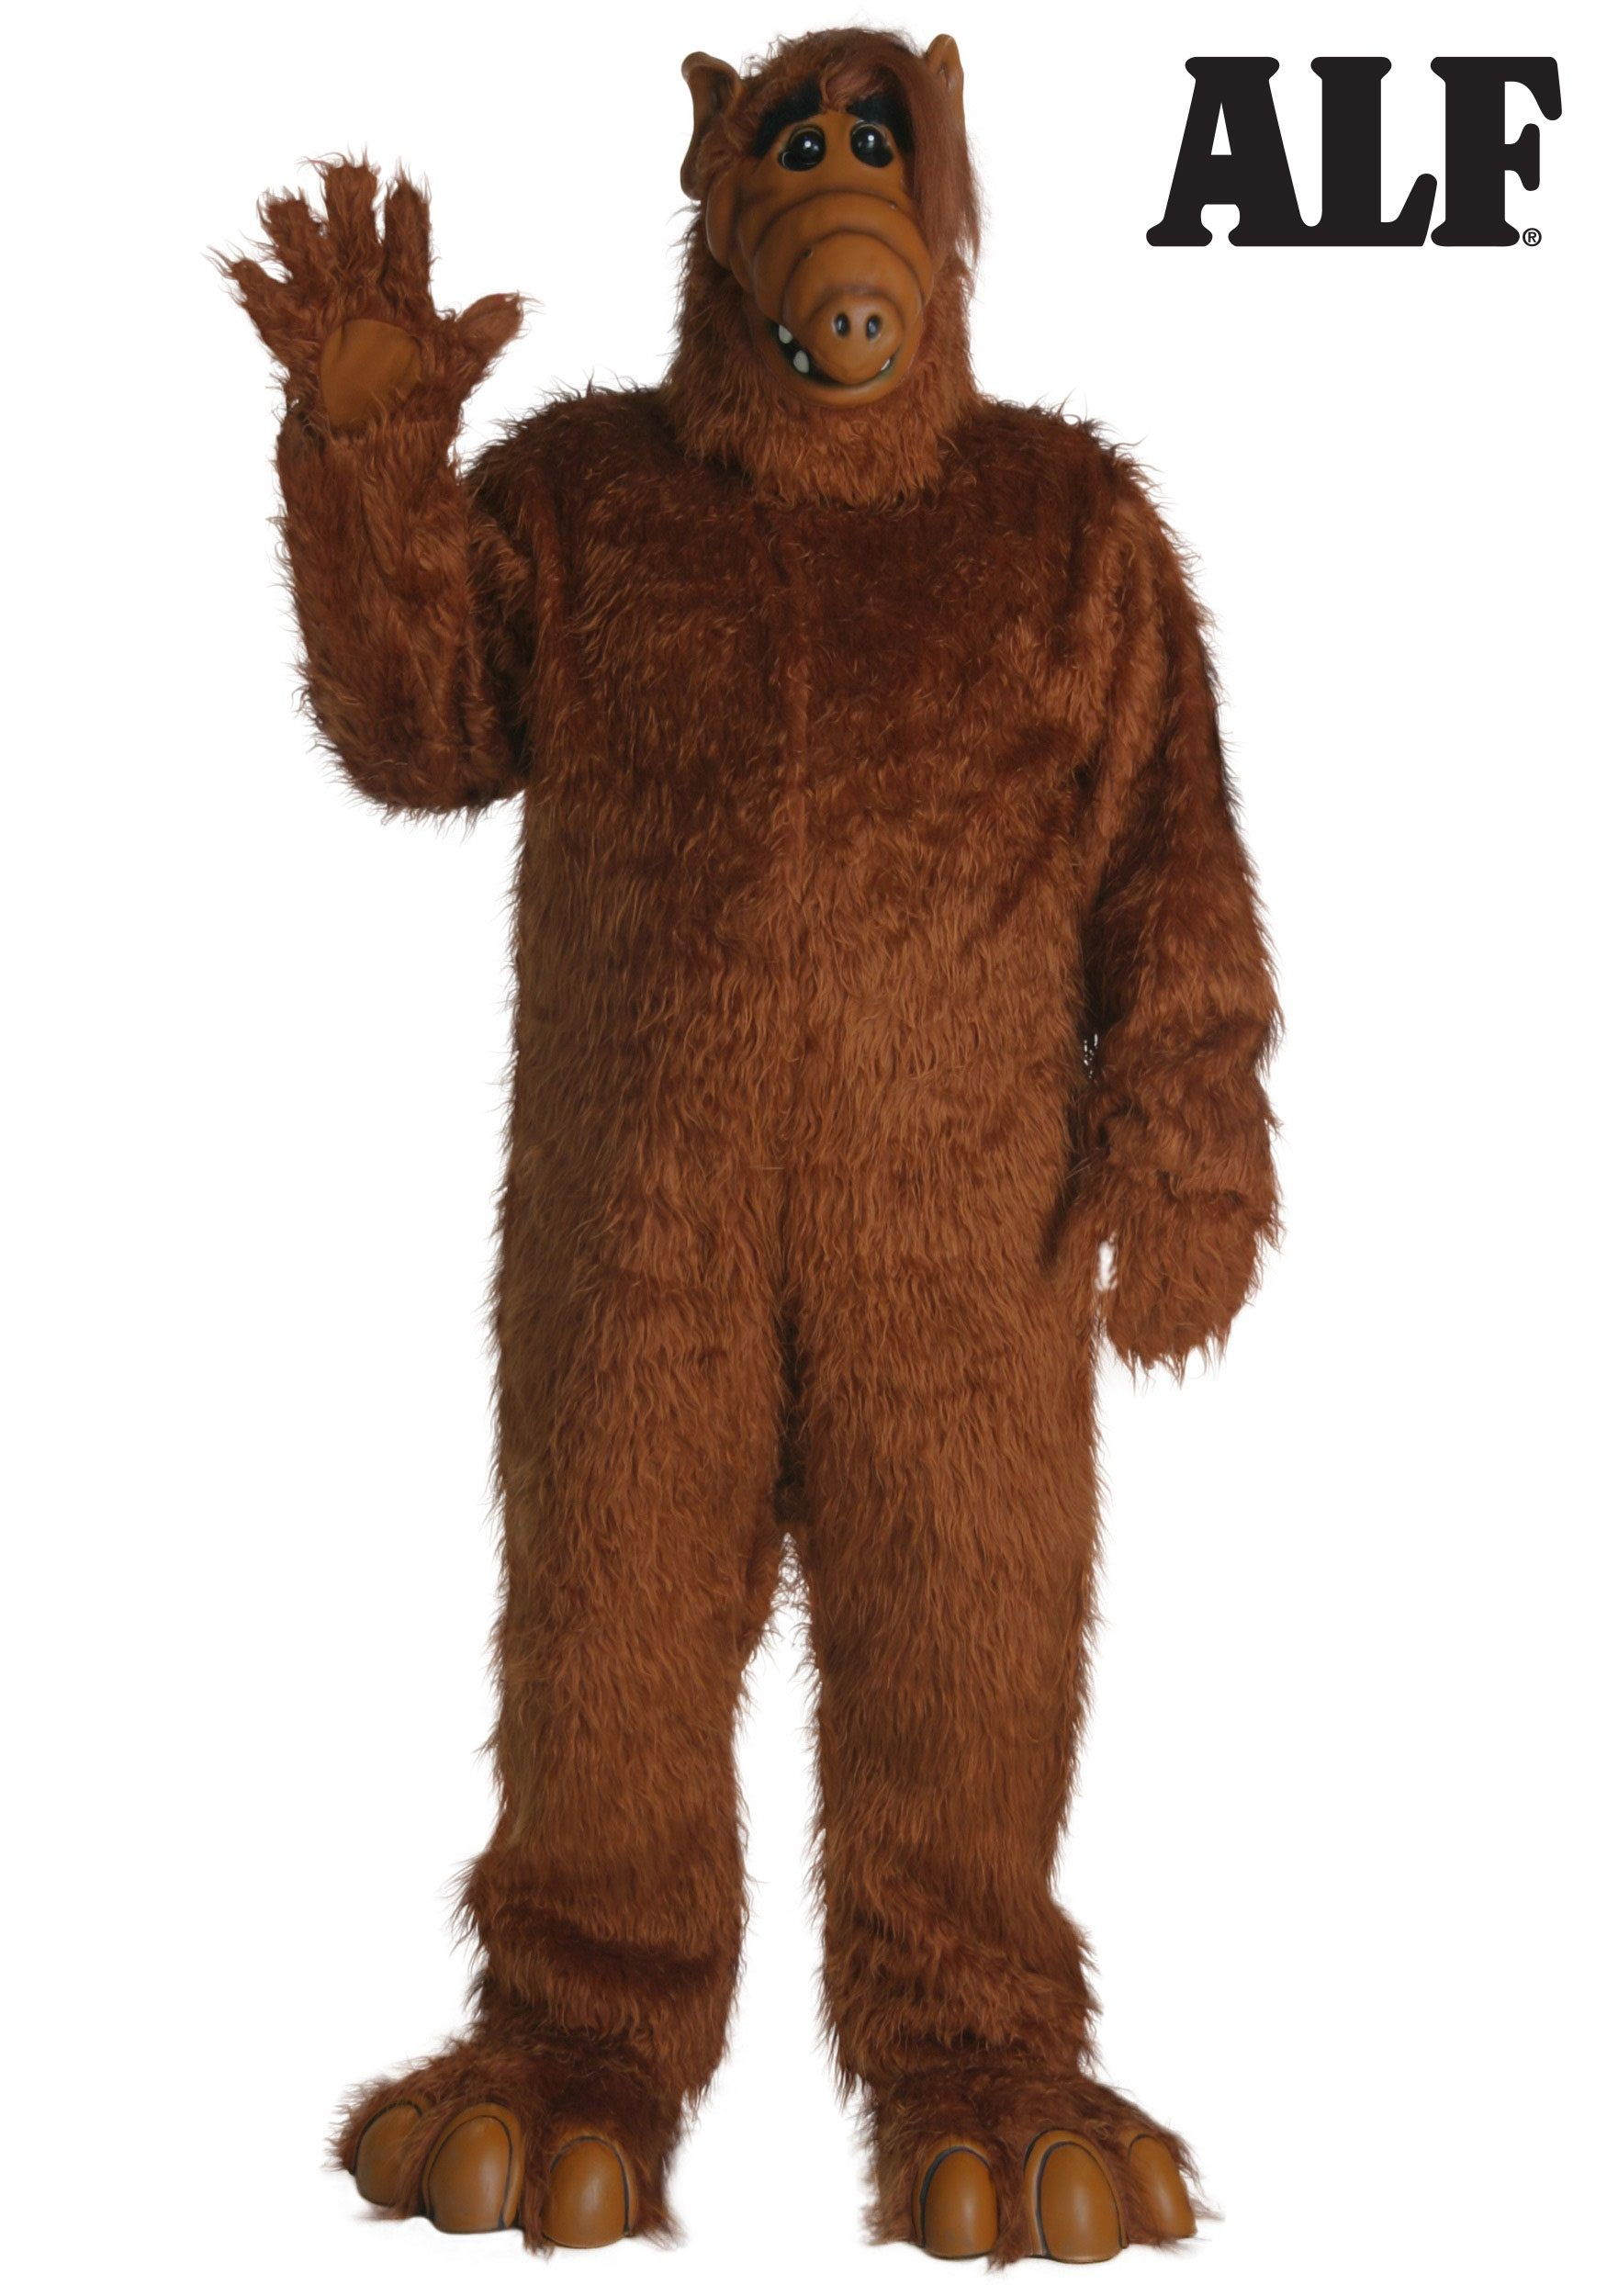 alf costume - Alf Halloween Episode